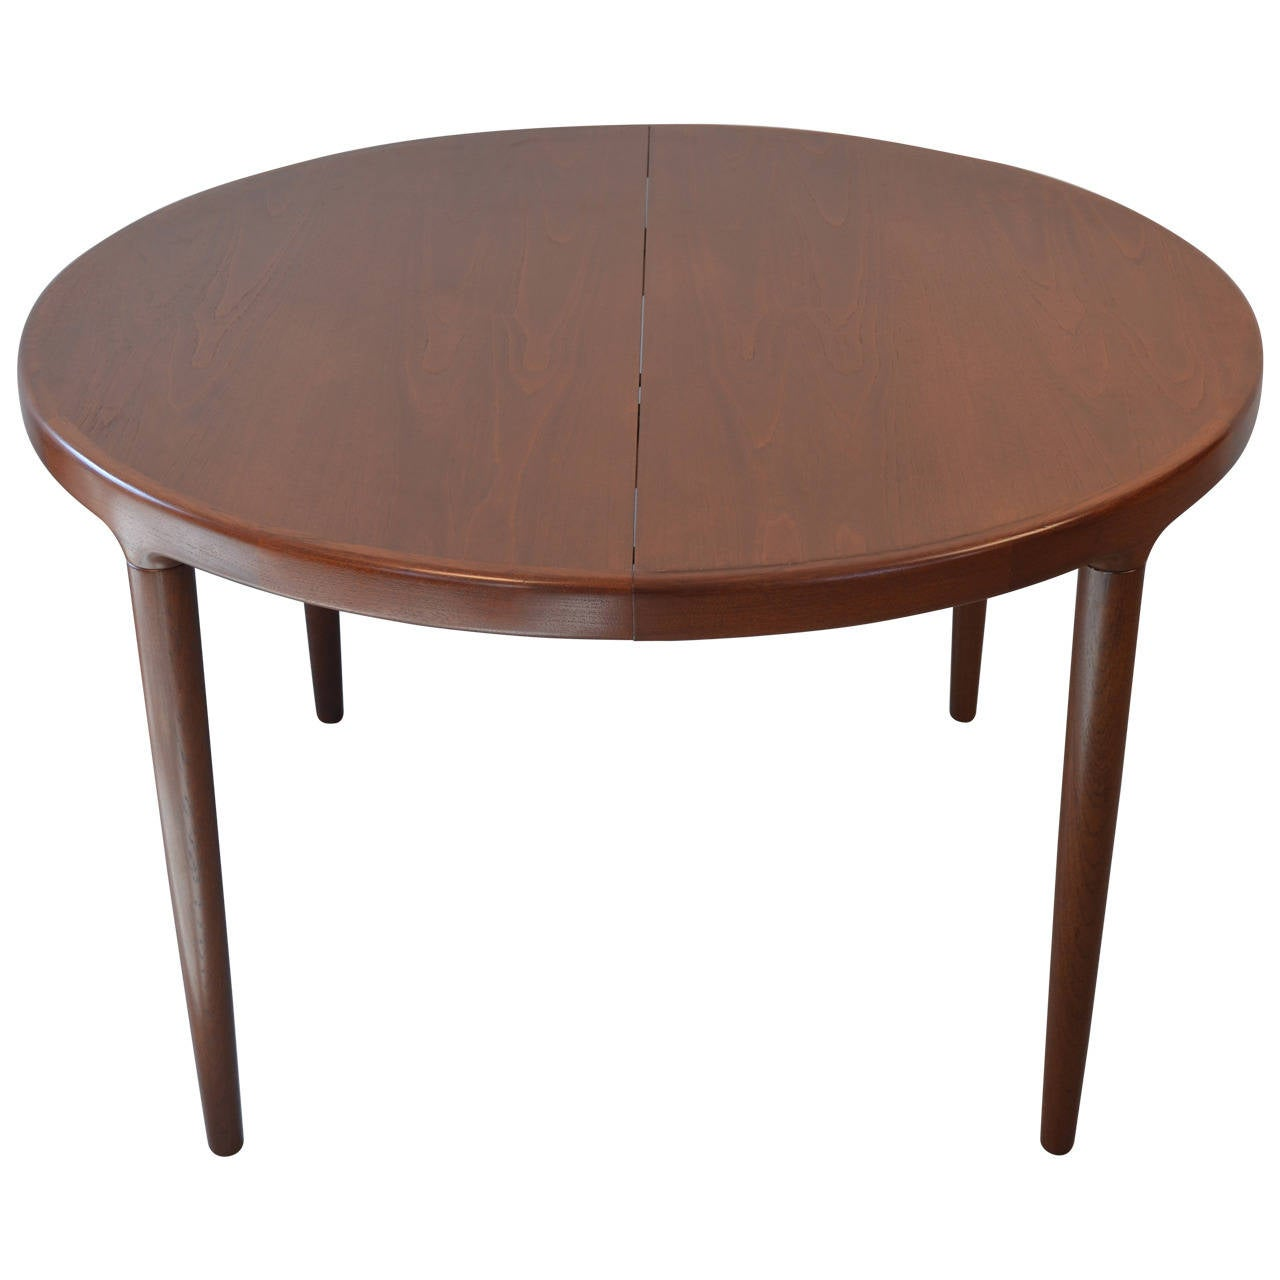 Round dining table with two leaves for sale at 1stdibs for Dining room table for 2